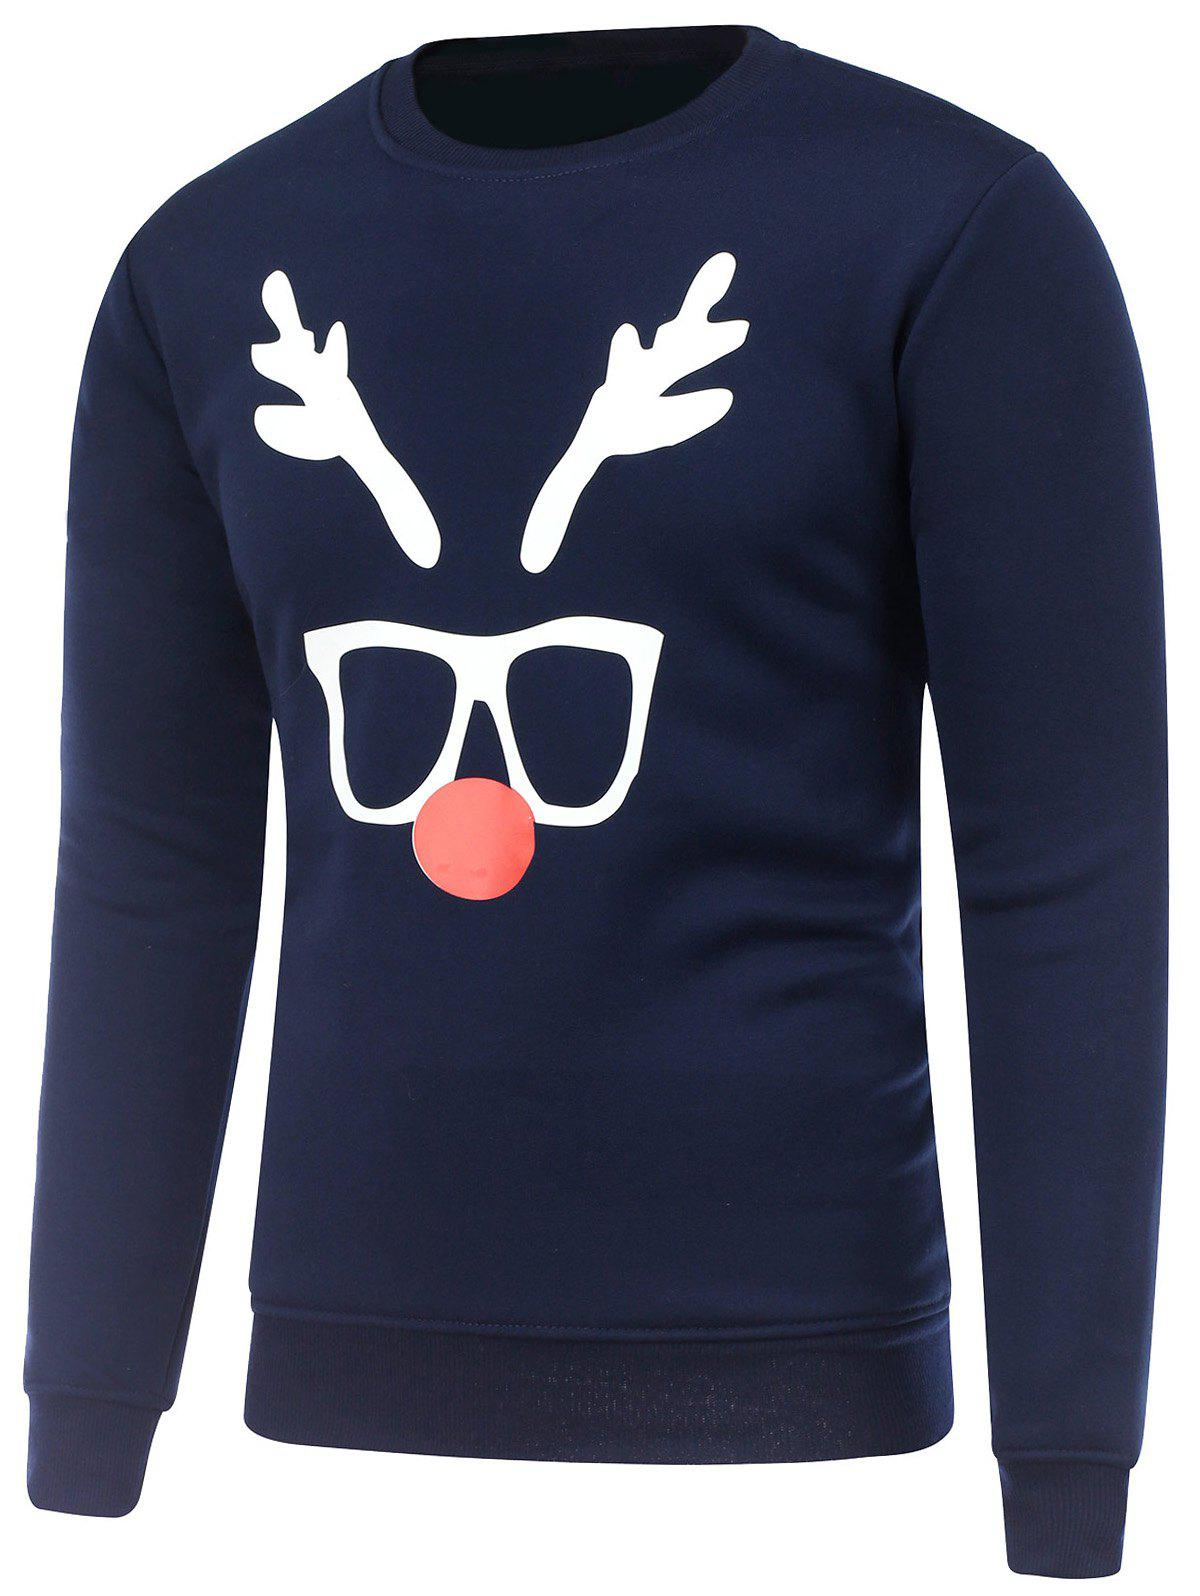 Crew Neck Long Sleeve Christmas Deer Horn Print SweatshirtMEN<br><br>Size: M; Color: CADETBLUE; Material: Cotton,Polyester; Shirt Length: Regular; Sleeve Length: Full; Style: Fashion; Weight: 0.550kg; Package Contents: 1 x Sweatshirt;